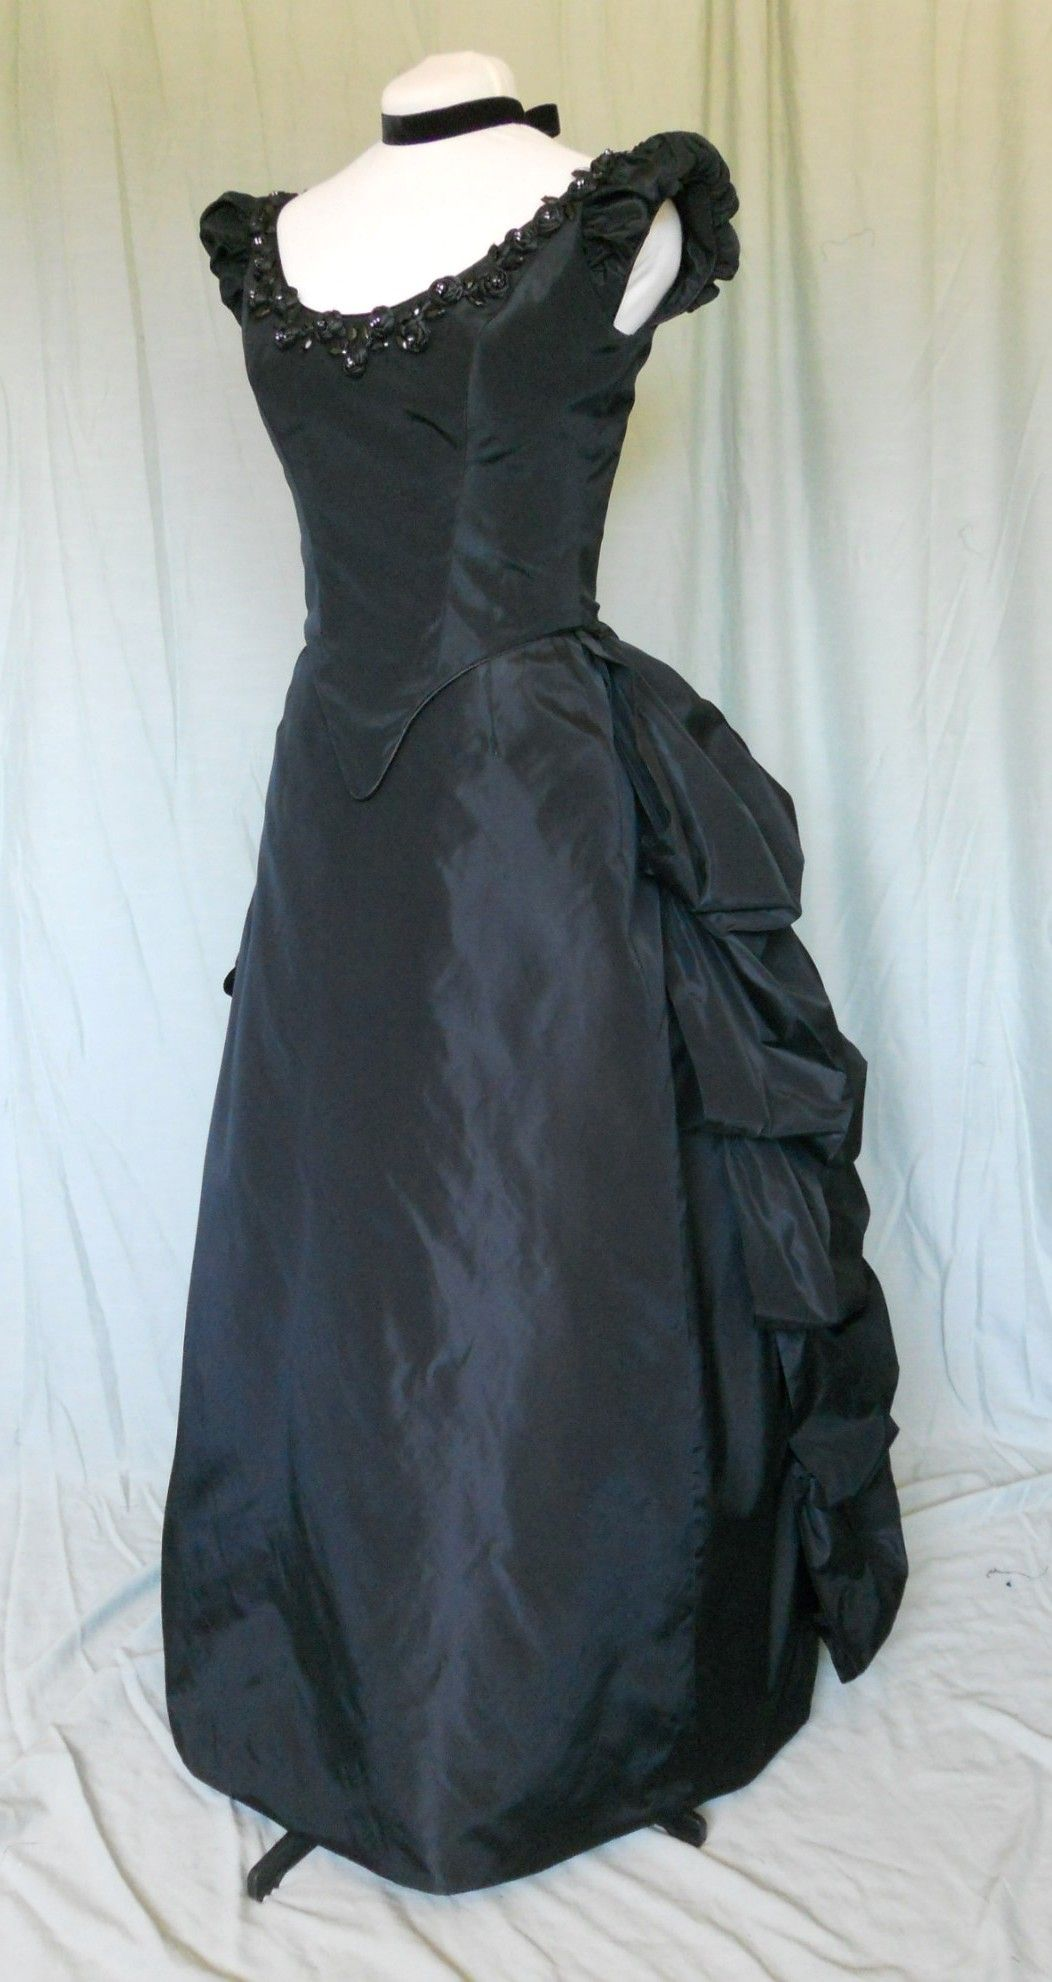 Black Gothic Neo-Victorian Bustled Style Ball Gown | Sewing ...